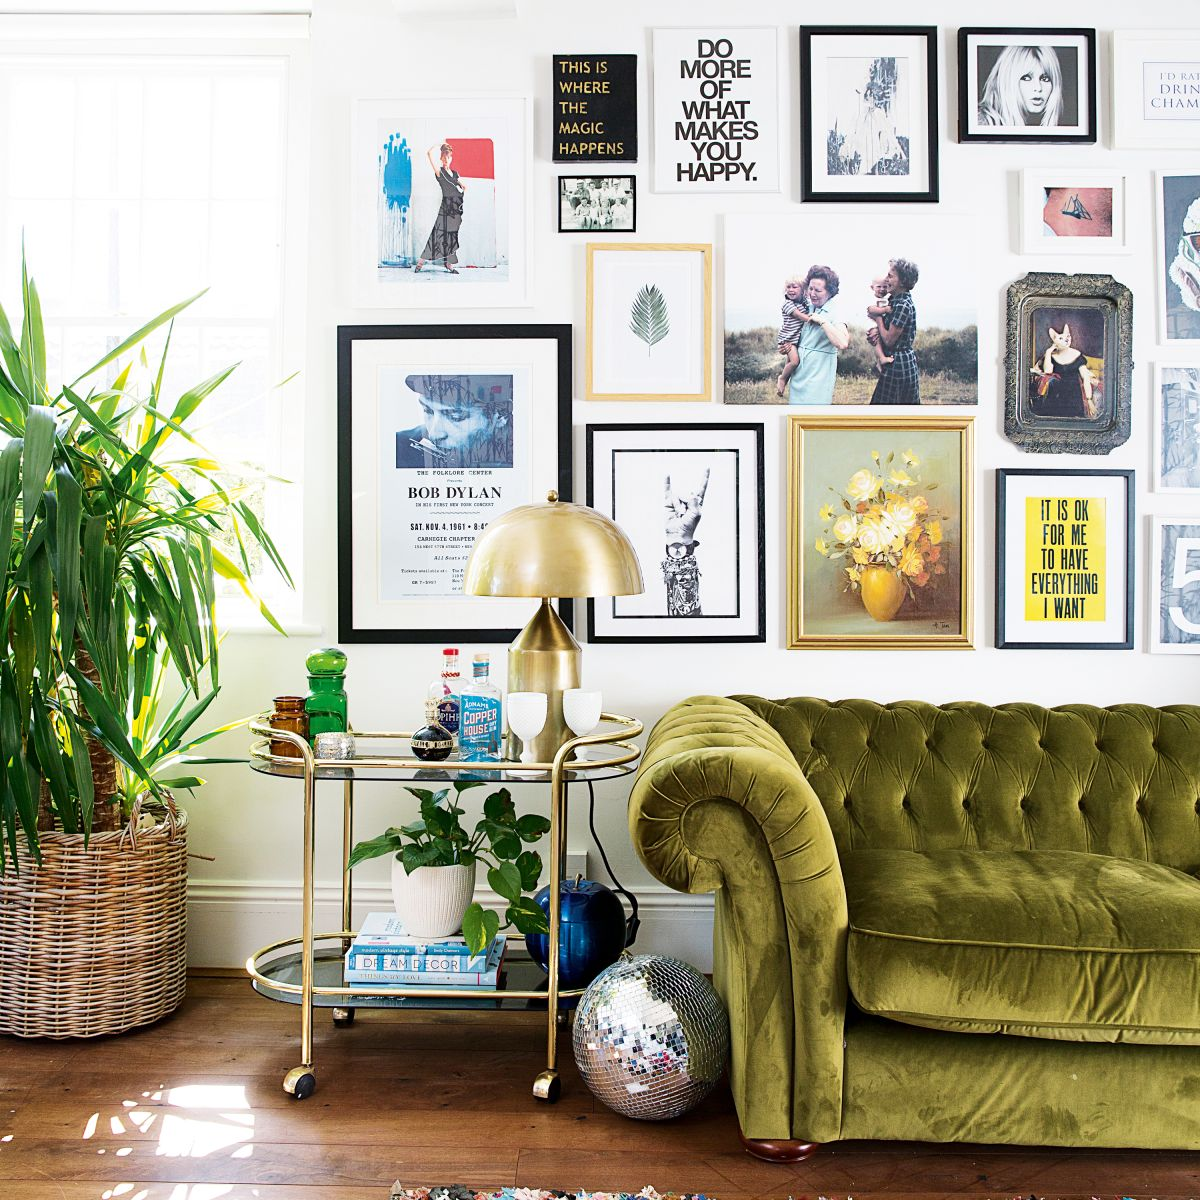 How To Hang A Gallery Wall: 11 Top Tips